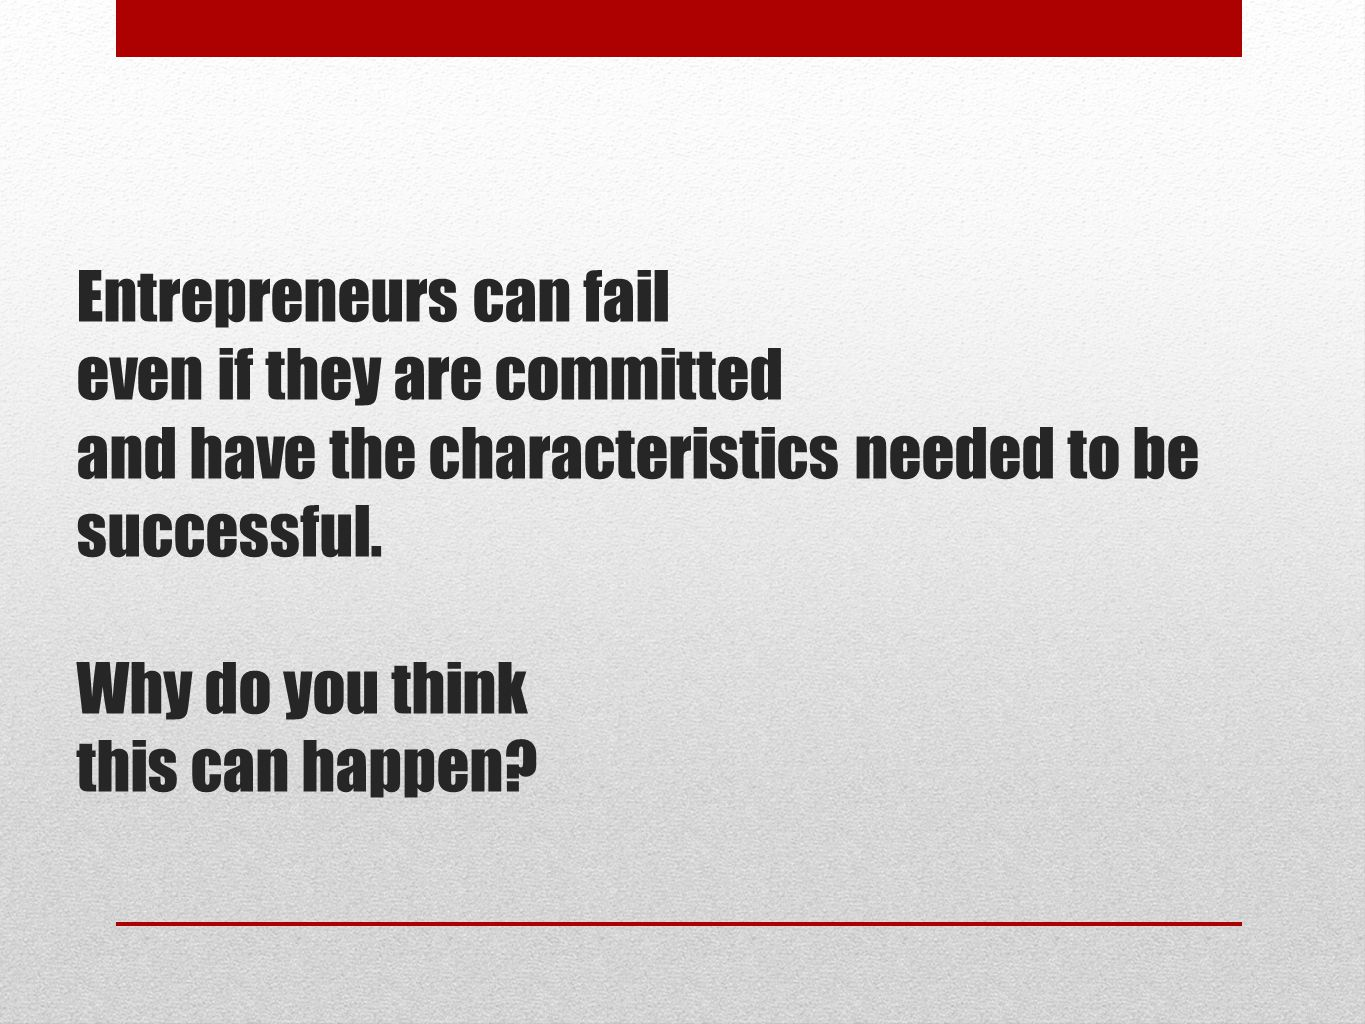 Entrepreneurs can fail even if they are committed and have the characteristics needed to be successful.